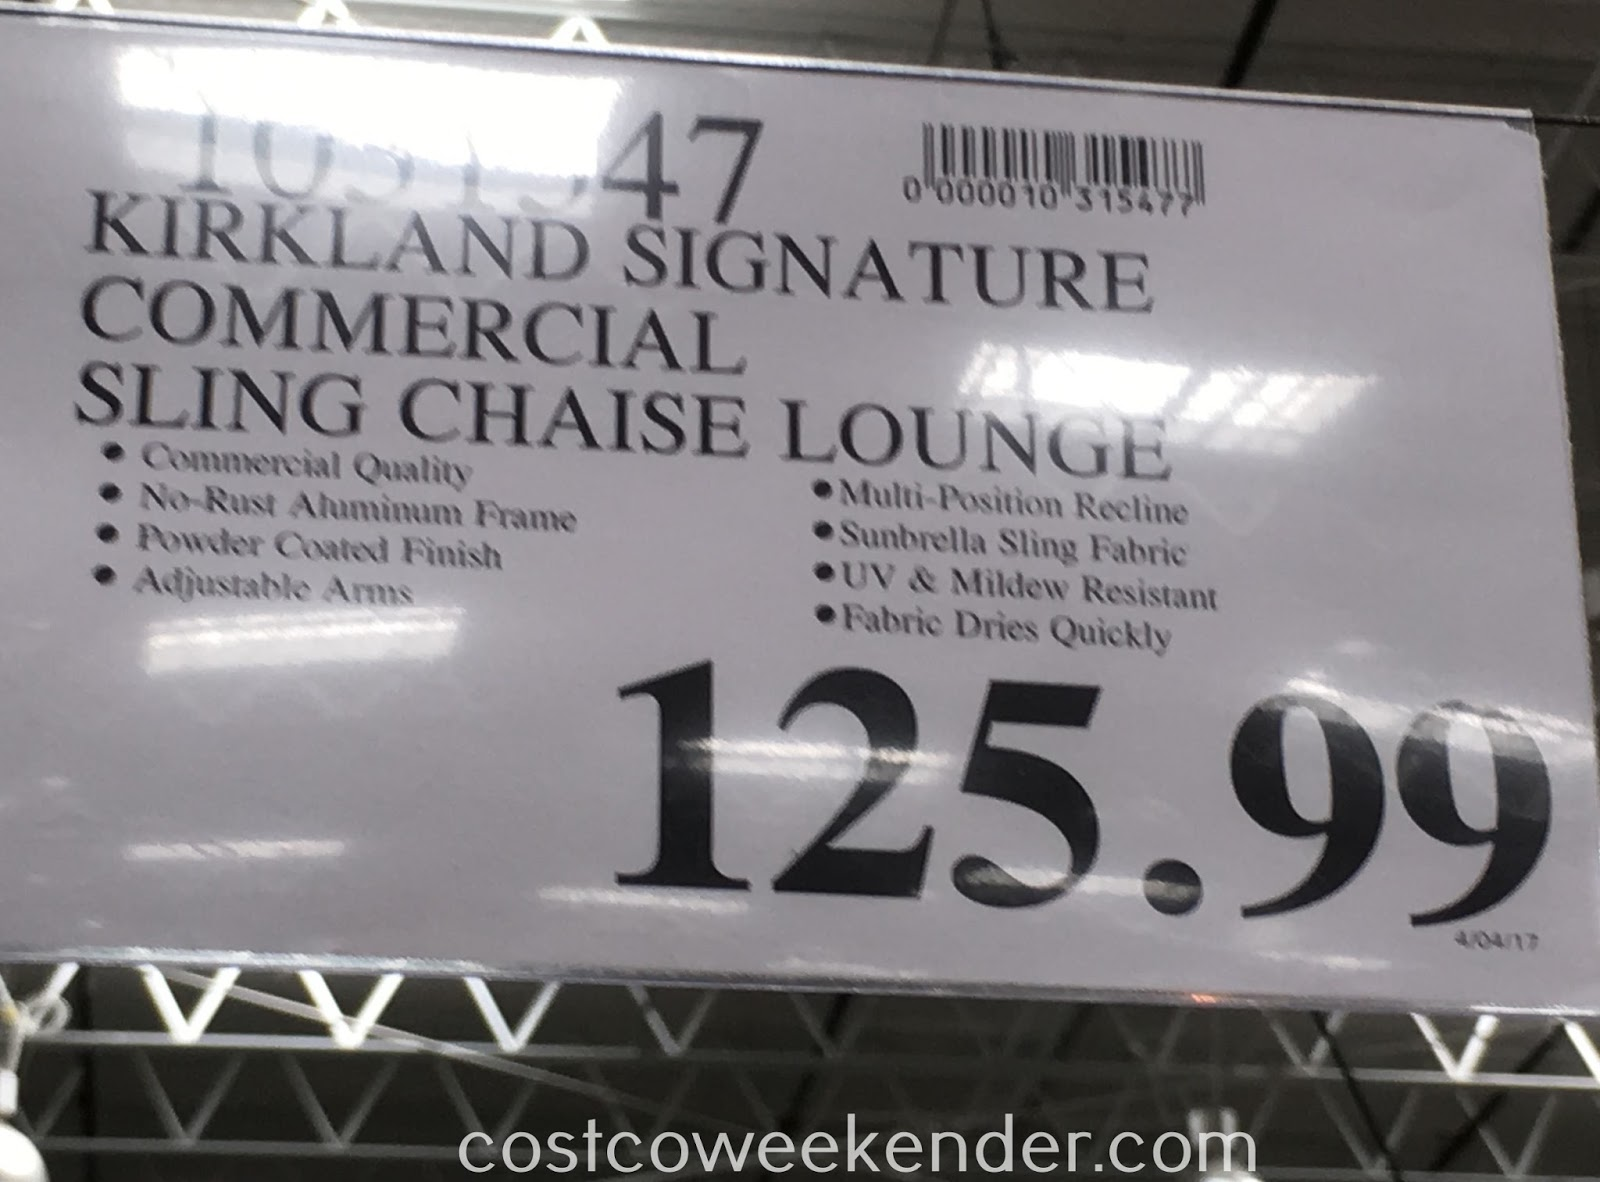 Costco 1031547 - Deal for the Kirkland Commercial Sling Chaise Lounge Chair at Costco